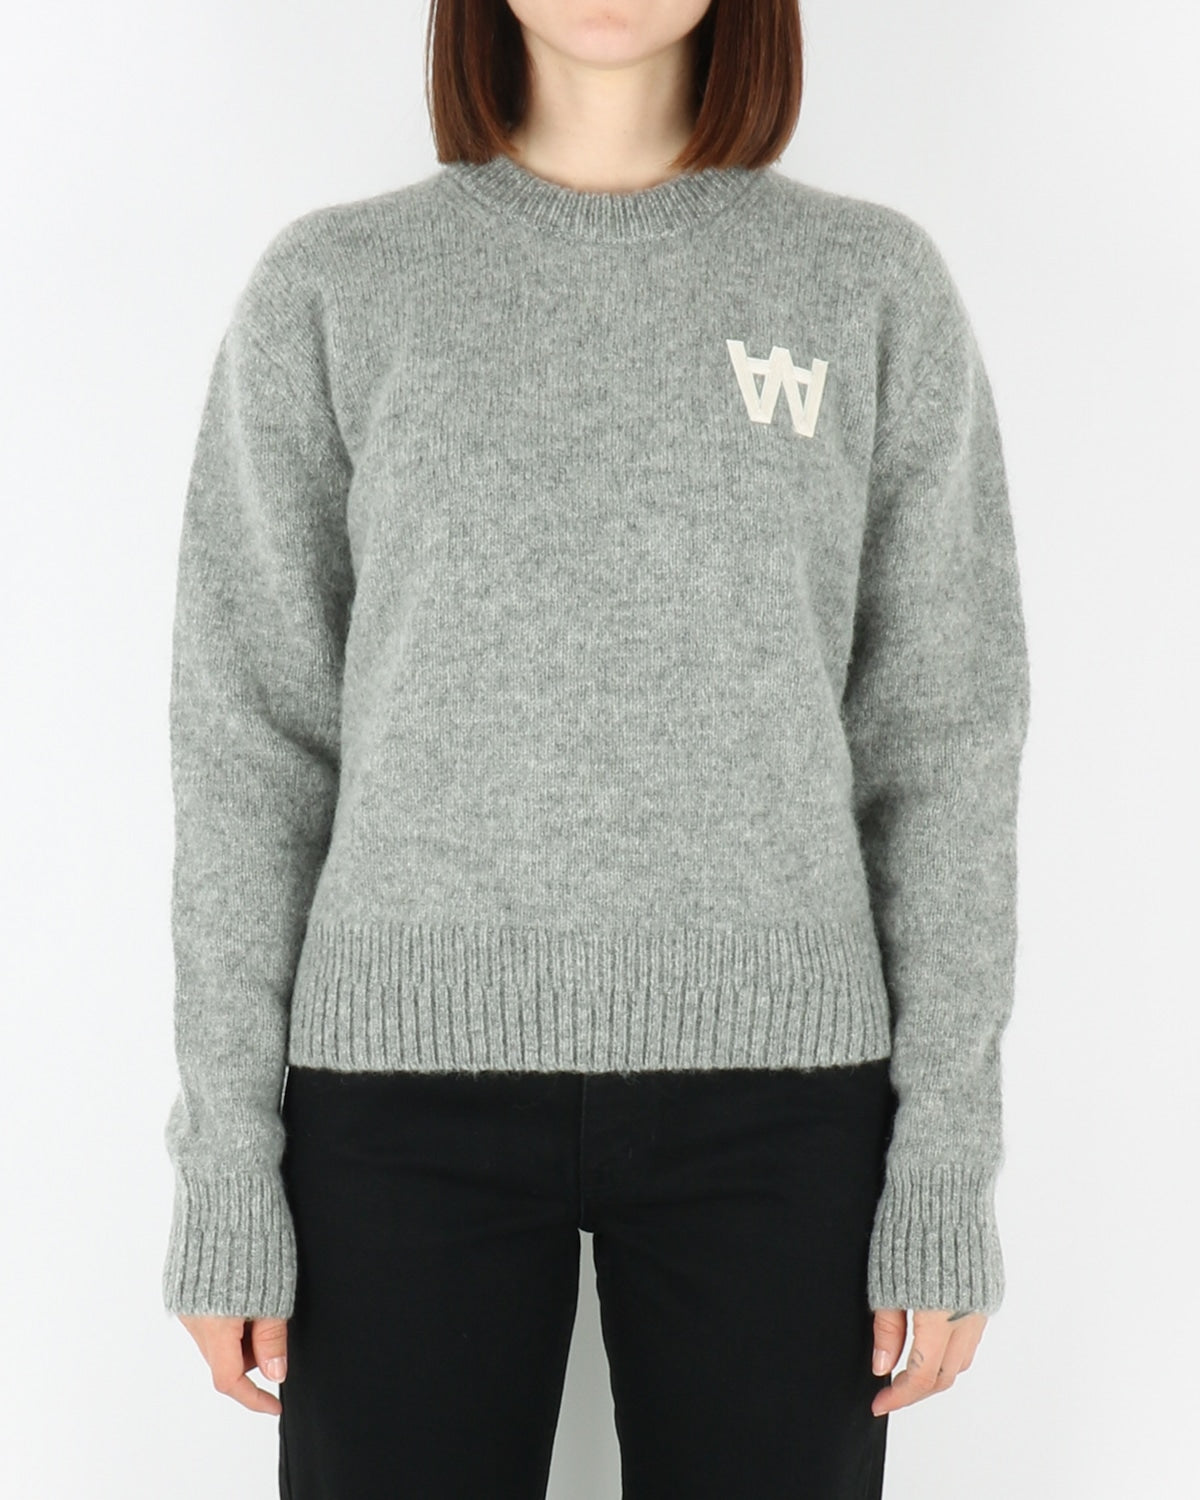 wood wood_anneli_sweatshirt_grey melange_view_1_3